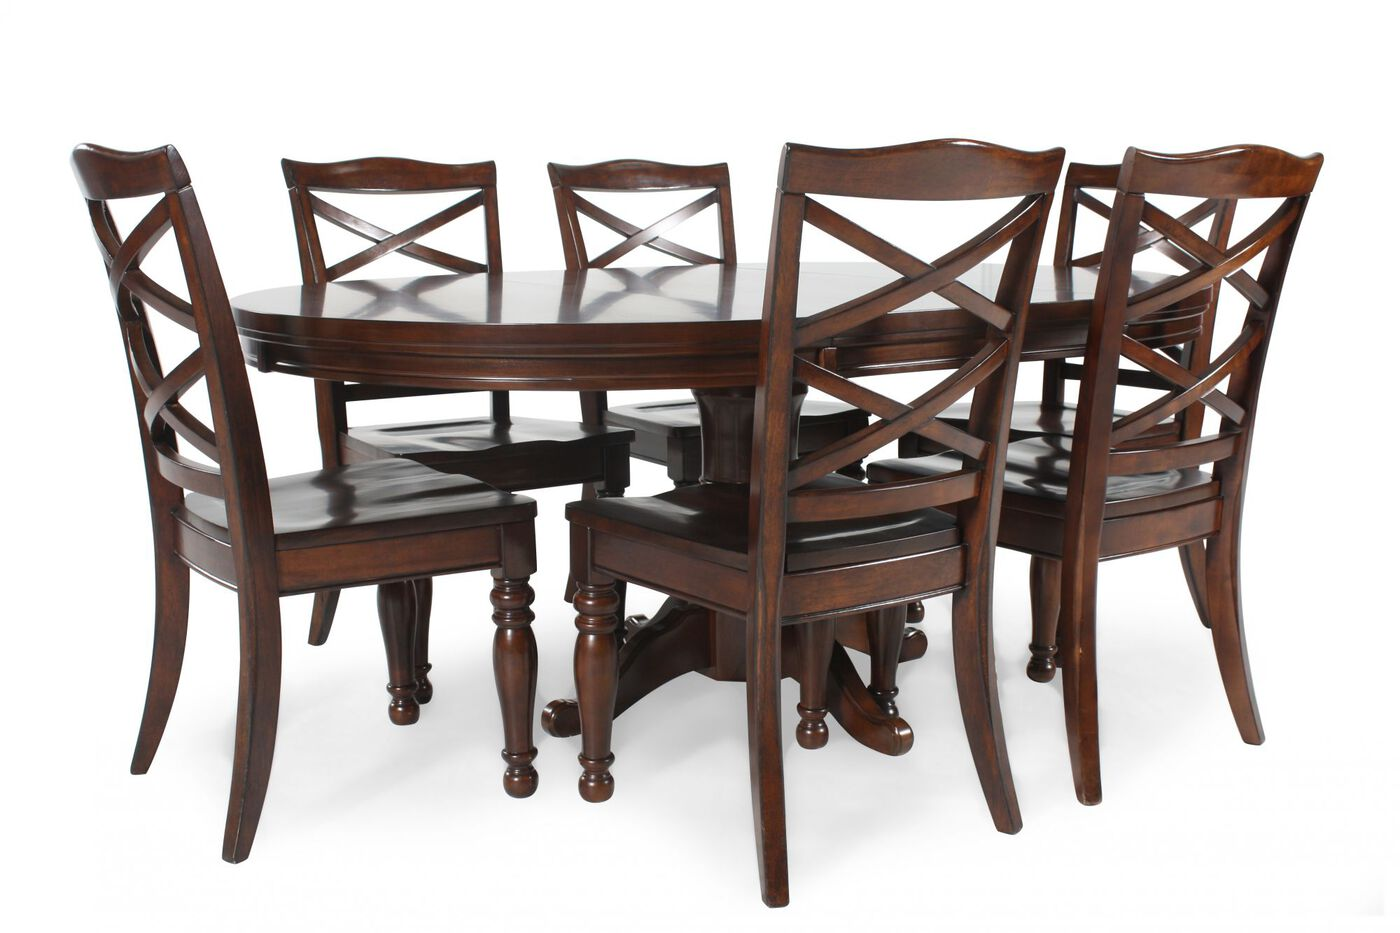 porter dining room set 28 images 15140 3 pub height  : ASH D697047ROUND 1 from 45.32.161.28 size 1400 x 933 jpeg 119kB